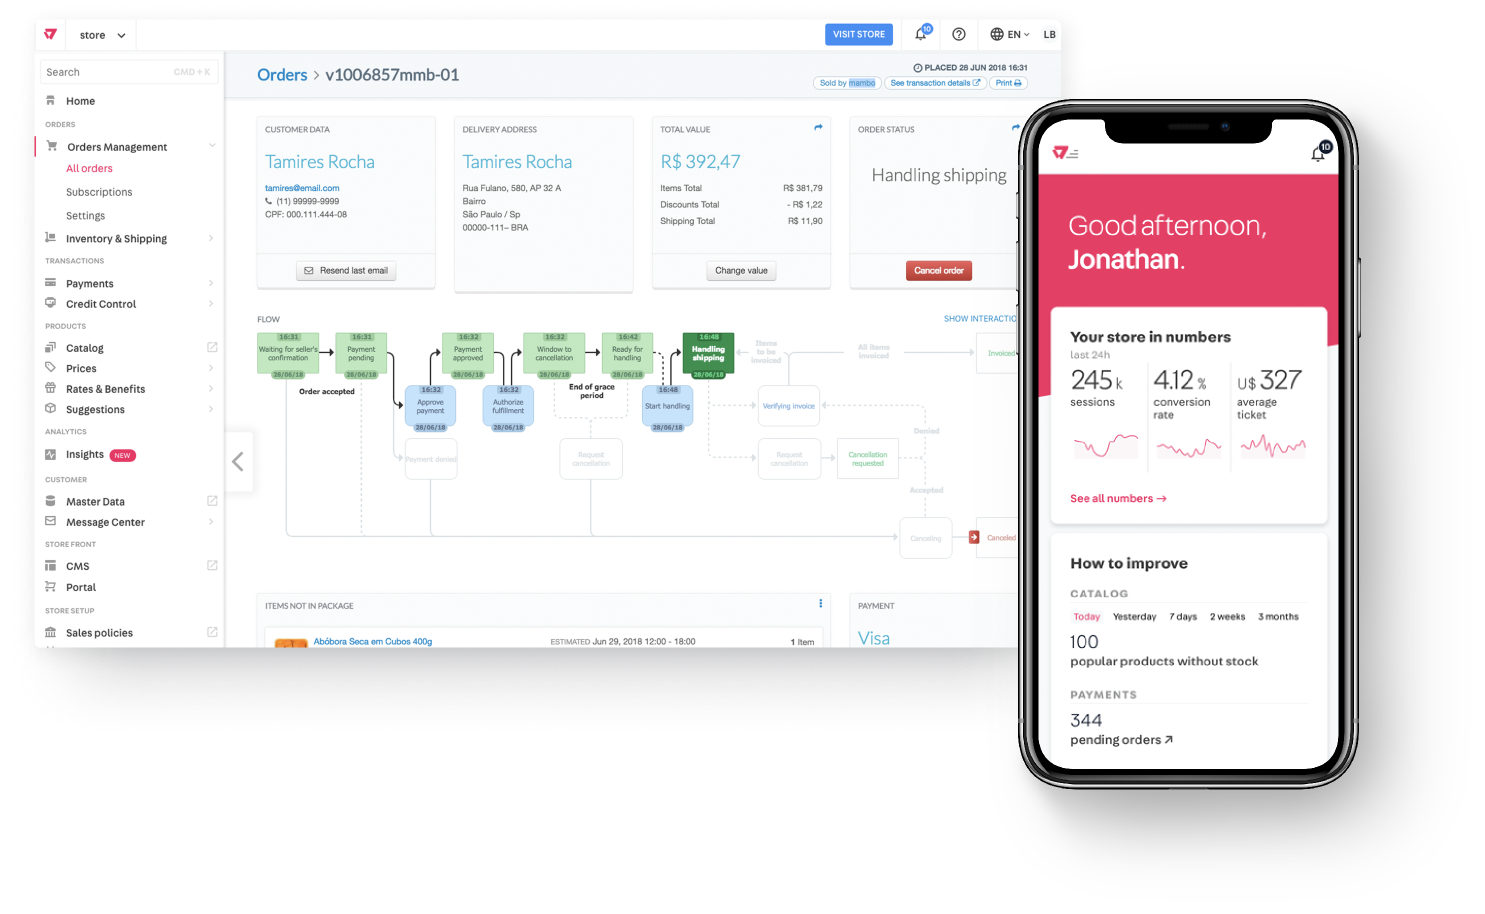 VTEX - Accelerate Commerce Transformation